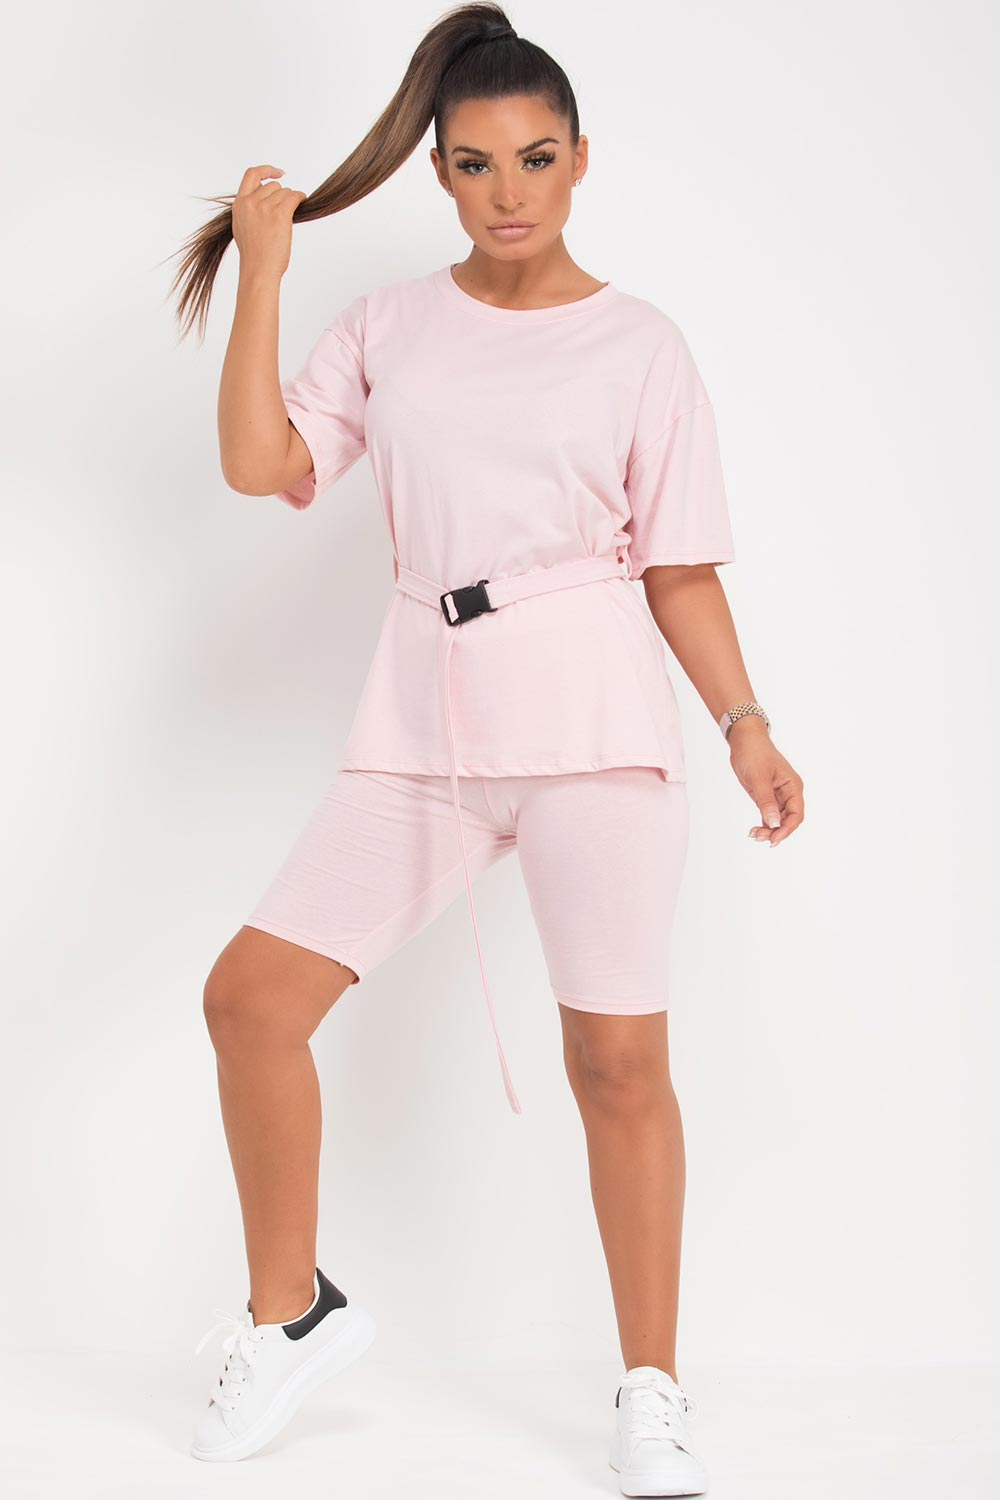 pink cycling shorts and top set with utility belt